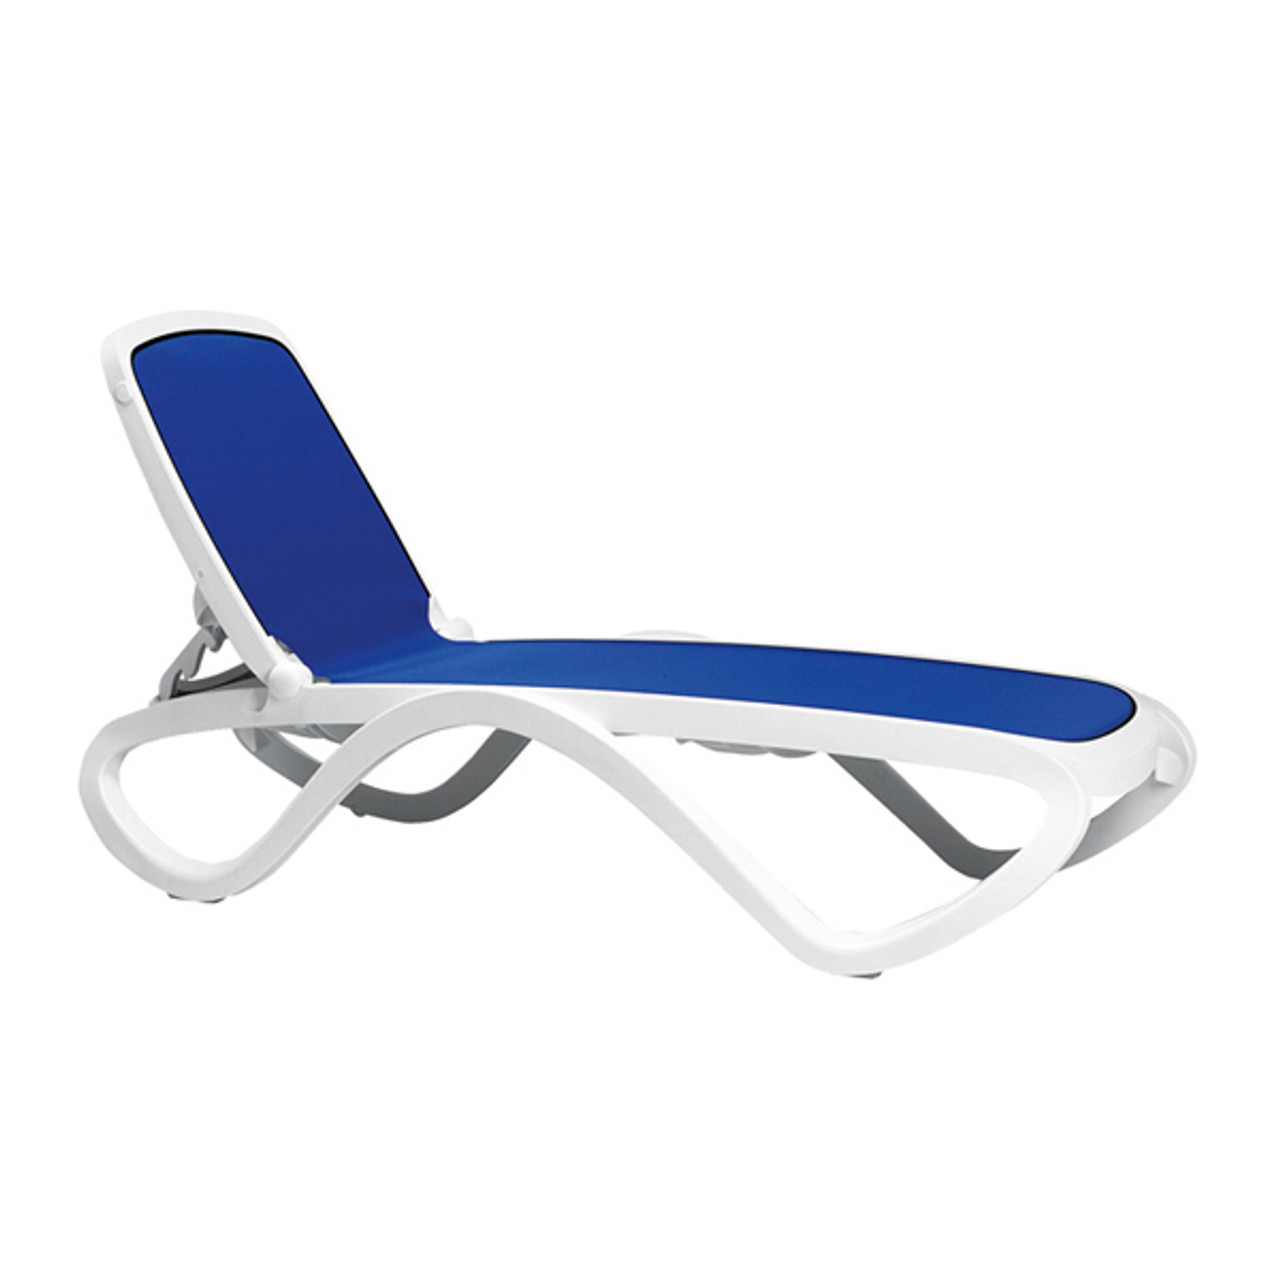 nardi omega resin chaise sun lounger